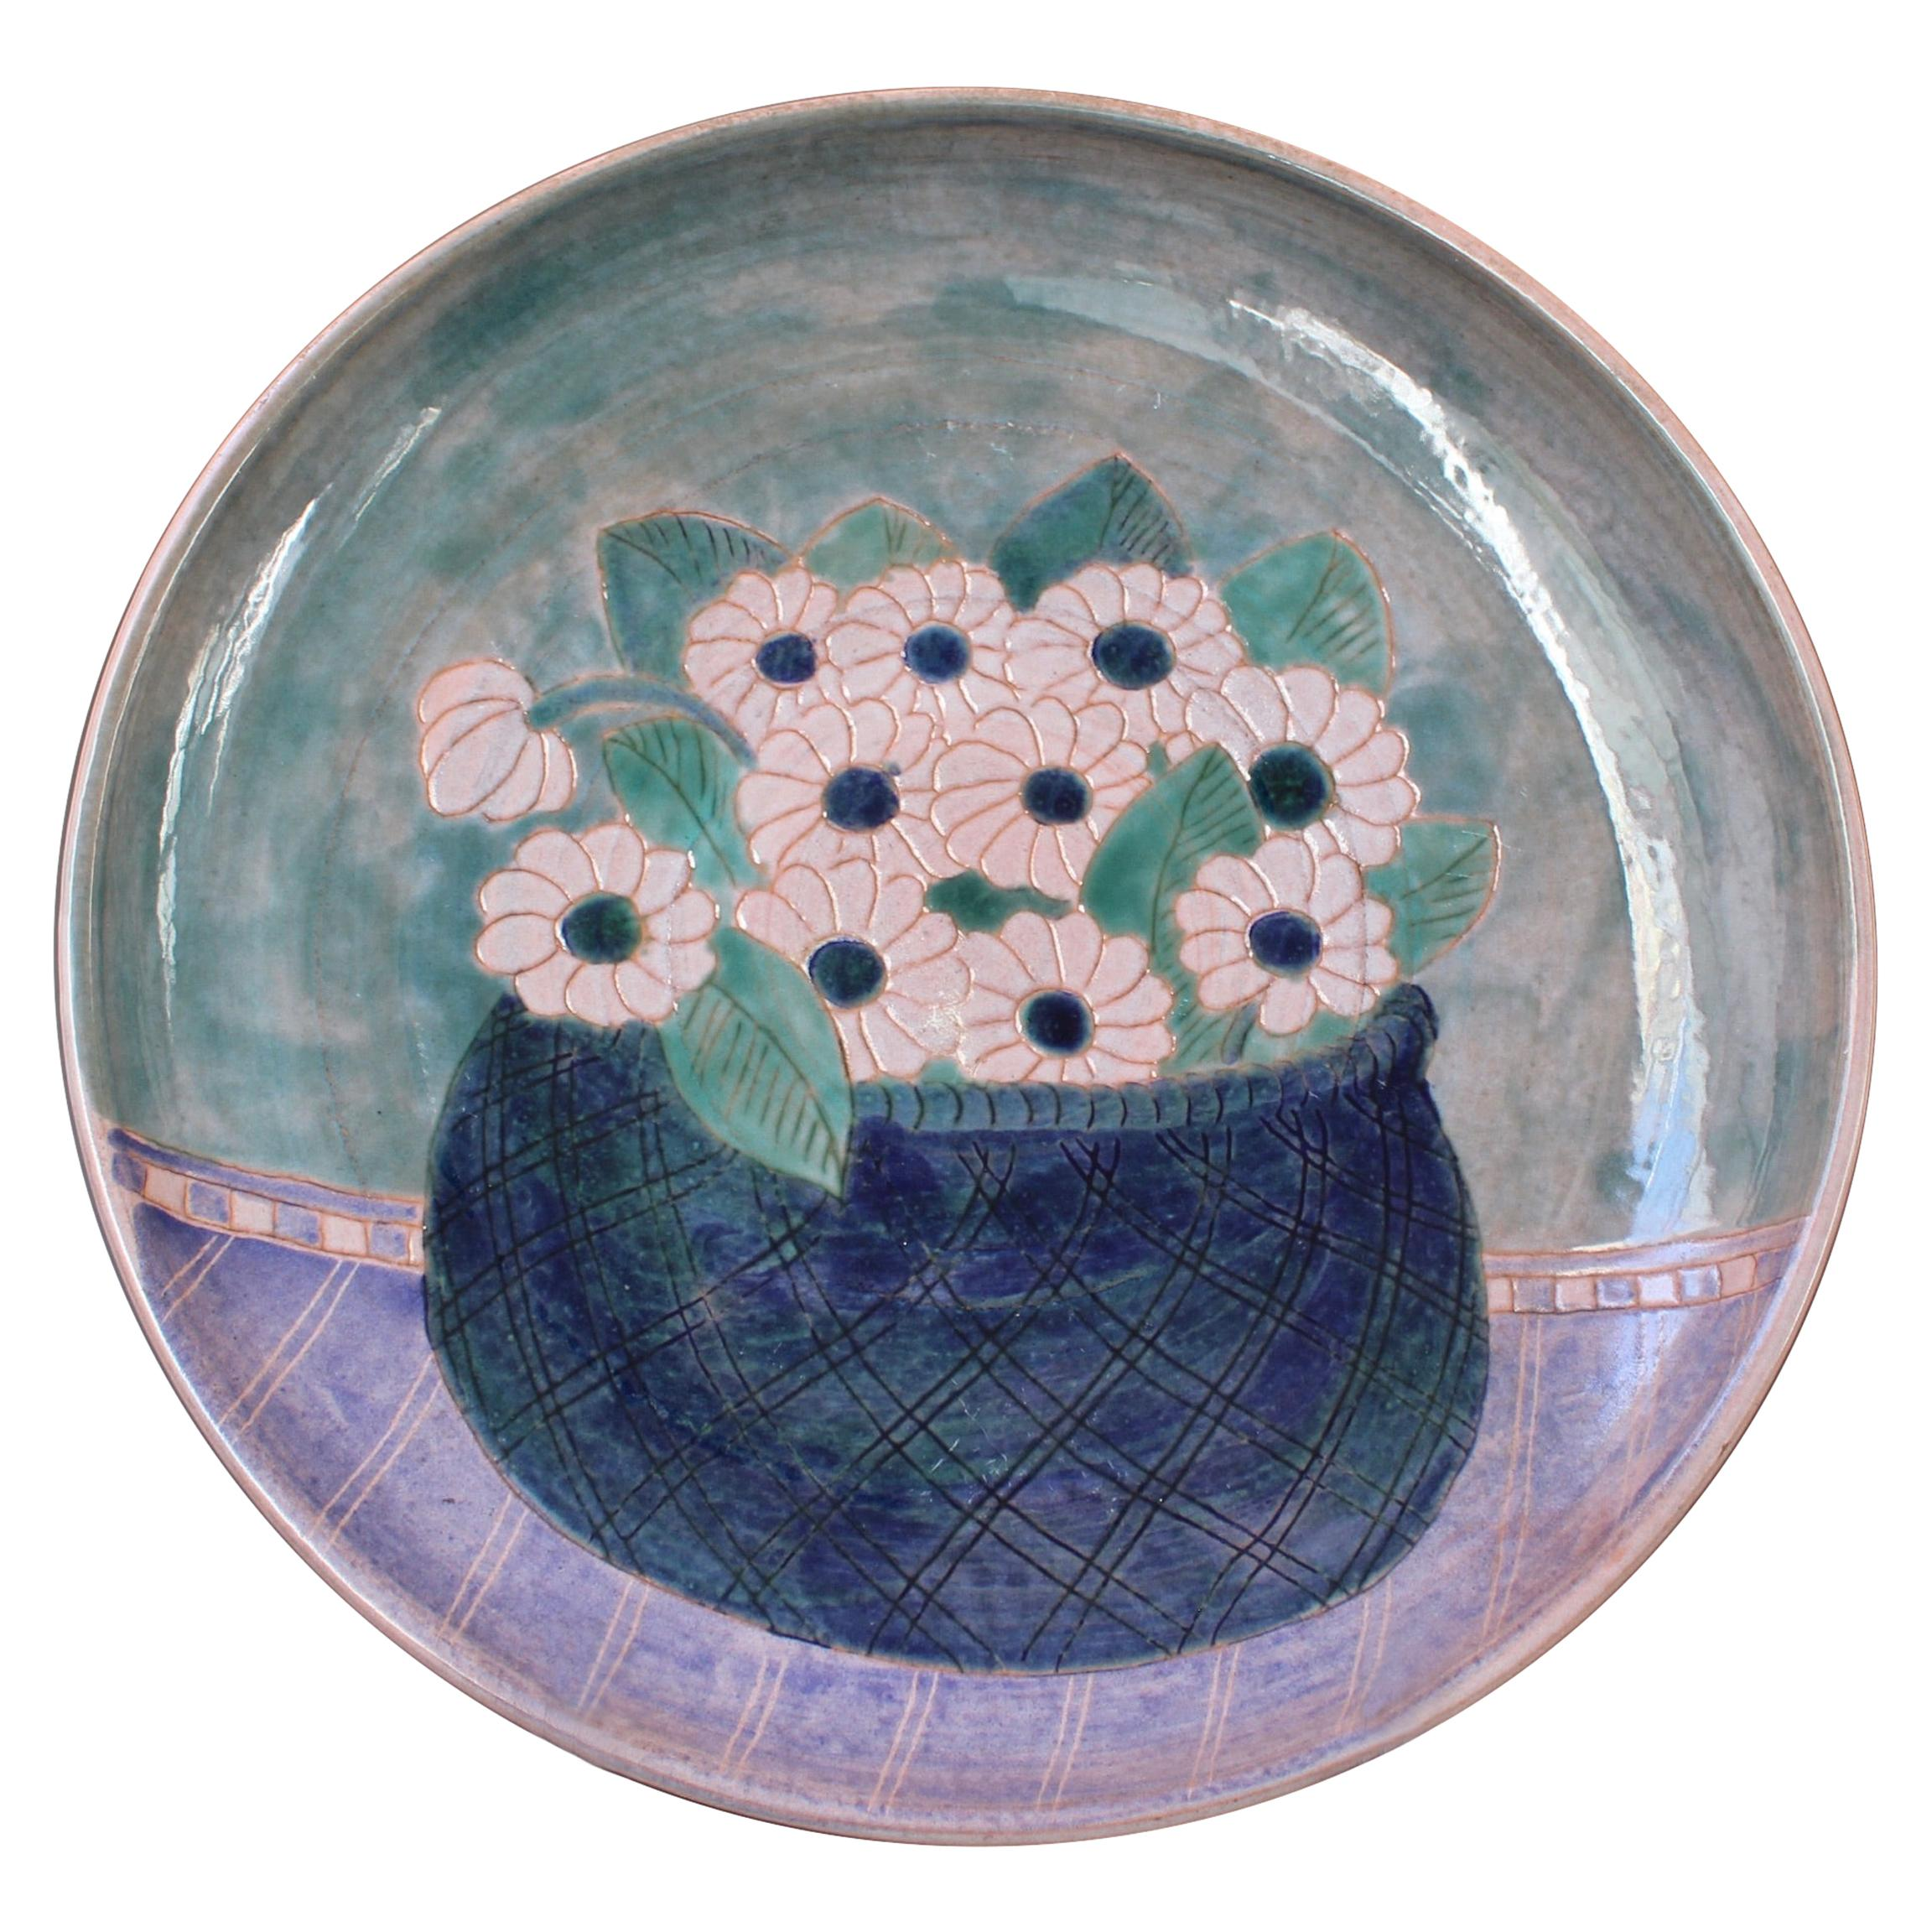 French Ceramic Decorative Platter by the Frères Cloutier 'circa 1970s'